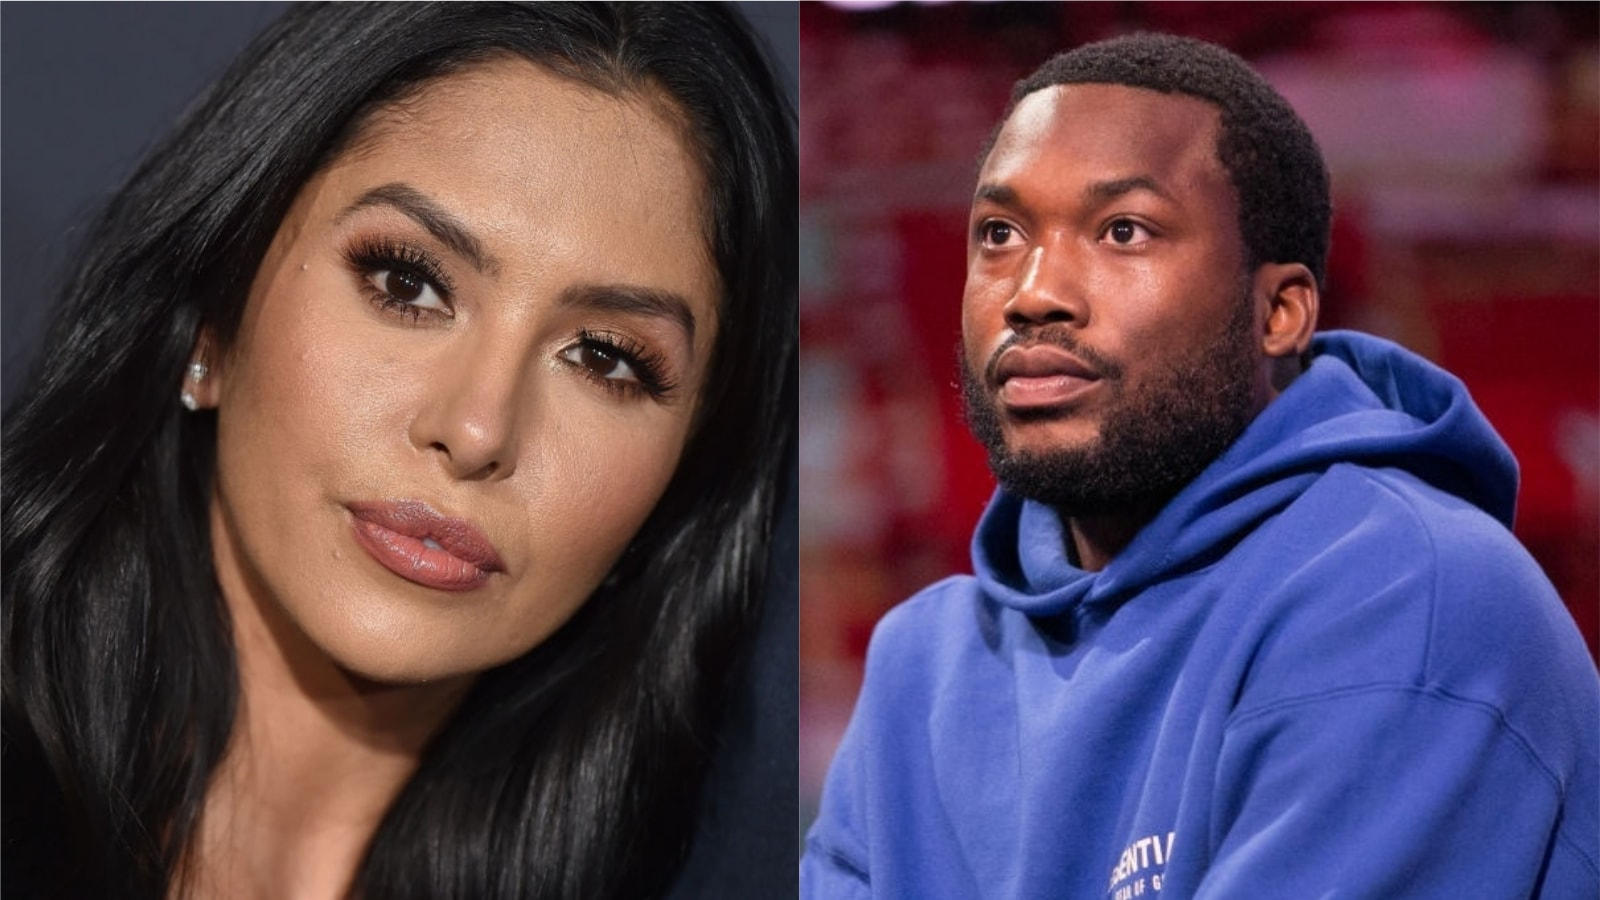 Vanessa Bryant Addresses Meek Mill Over Lyric Referencing Kobe's Helicopter Death: 'This Lacks Respect And Tact'